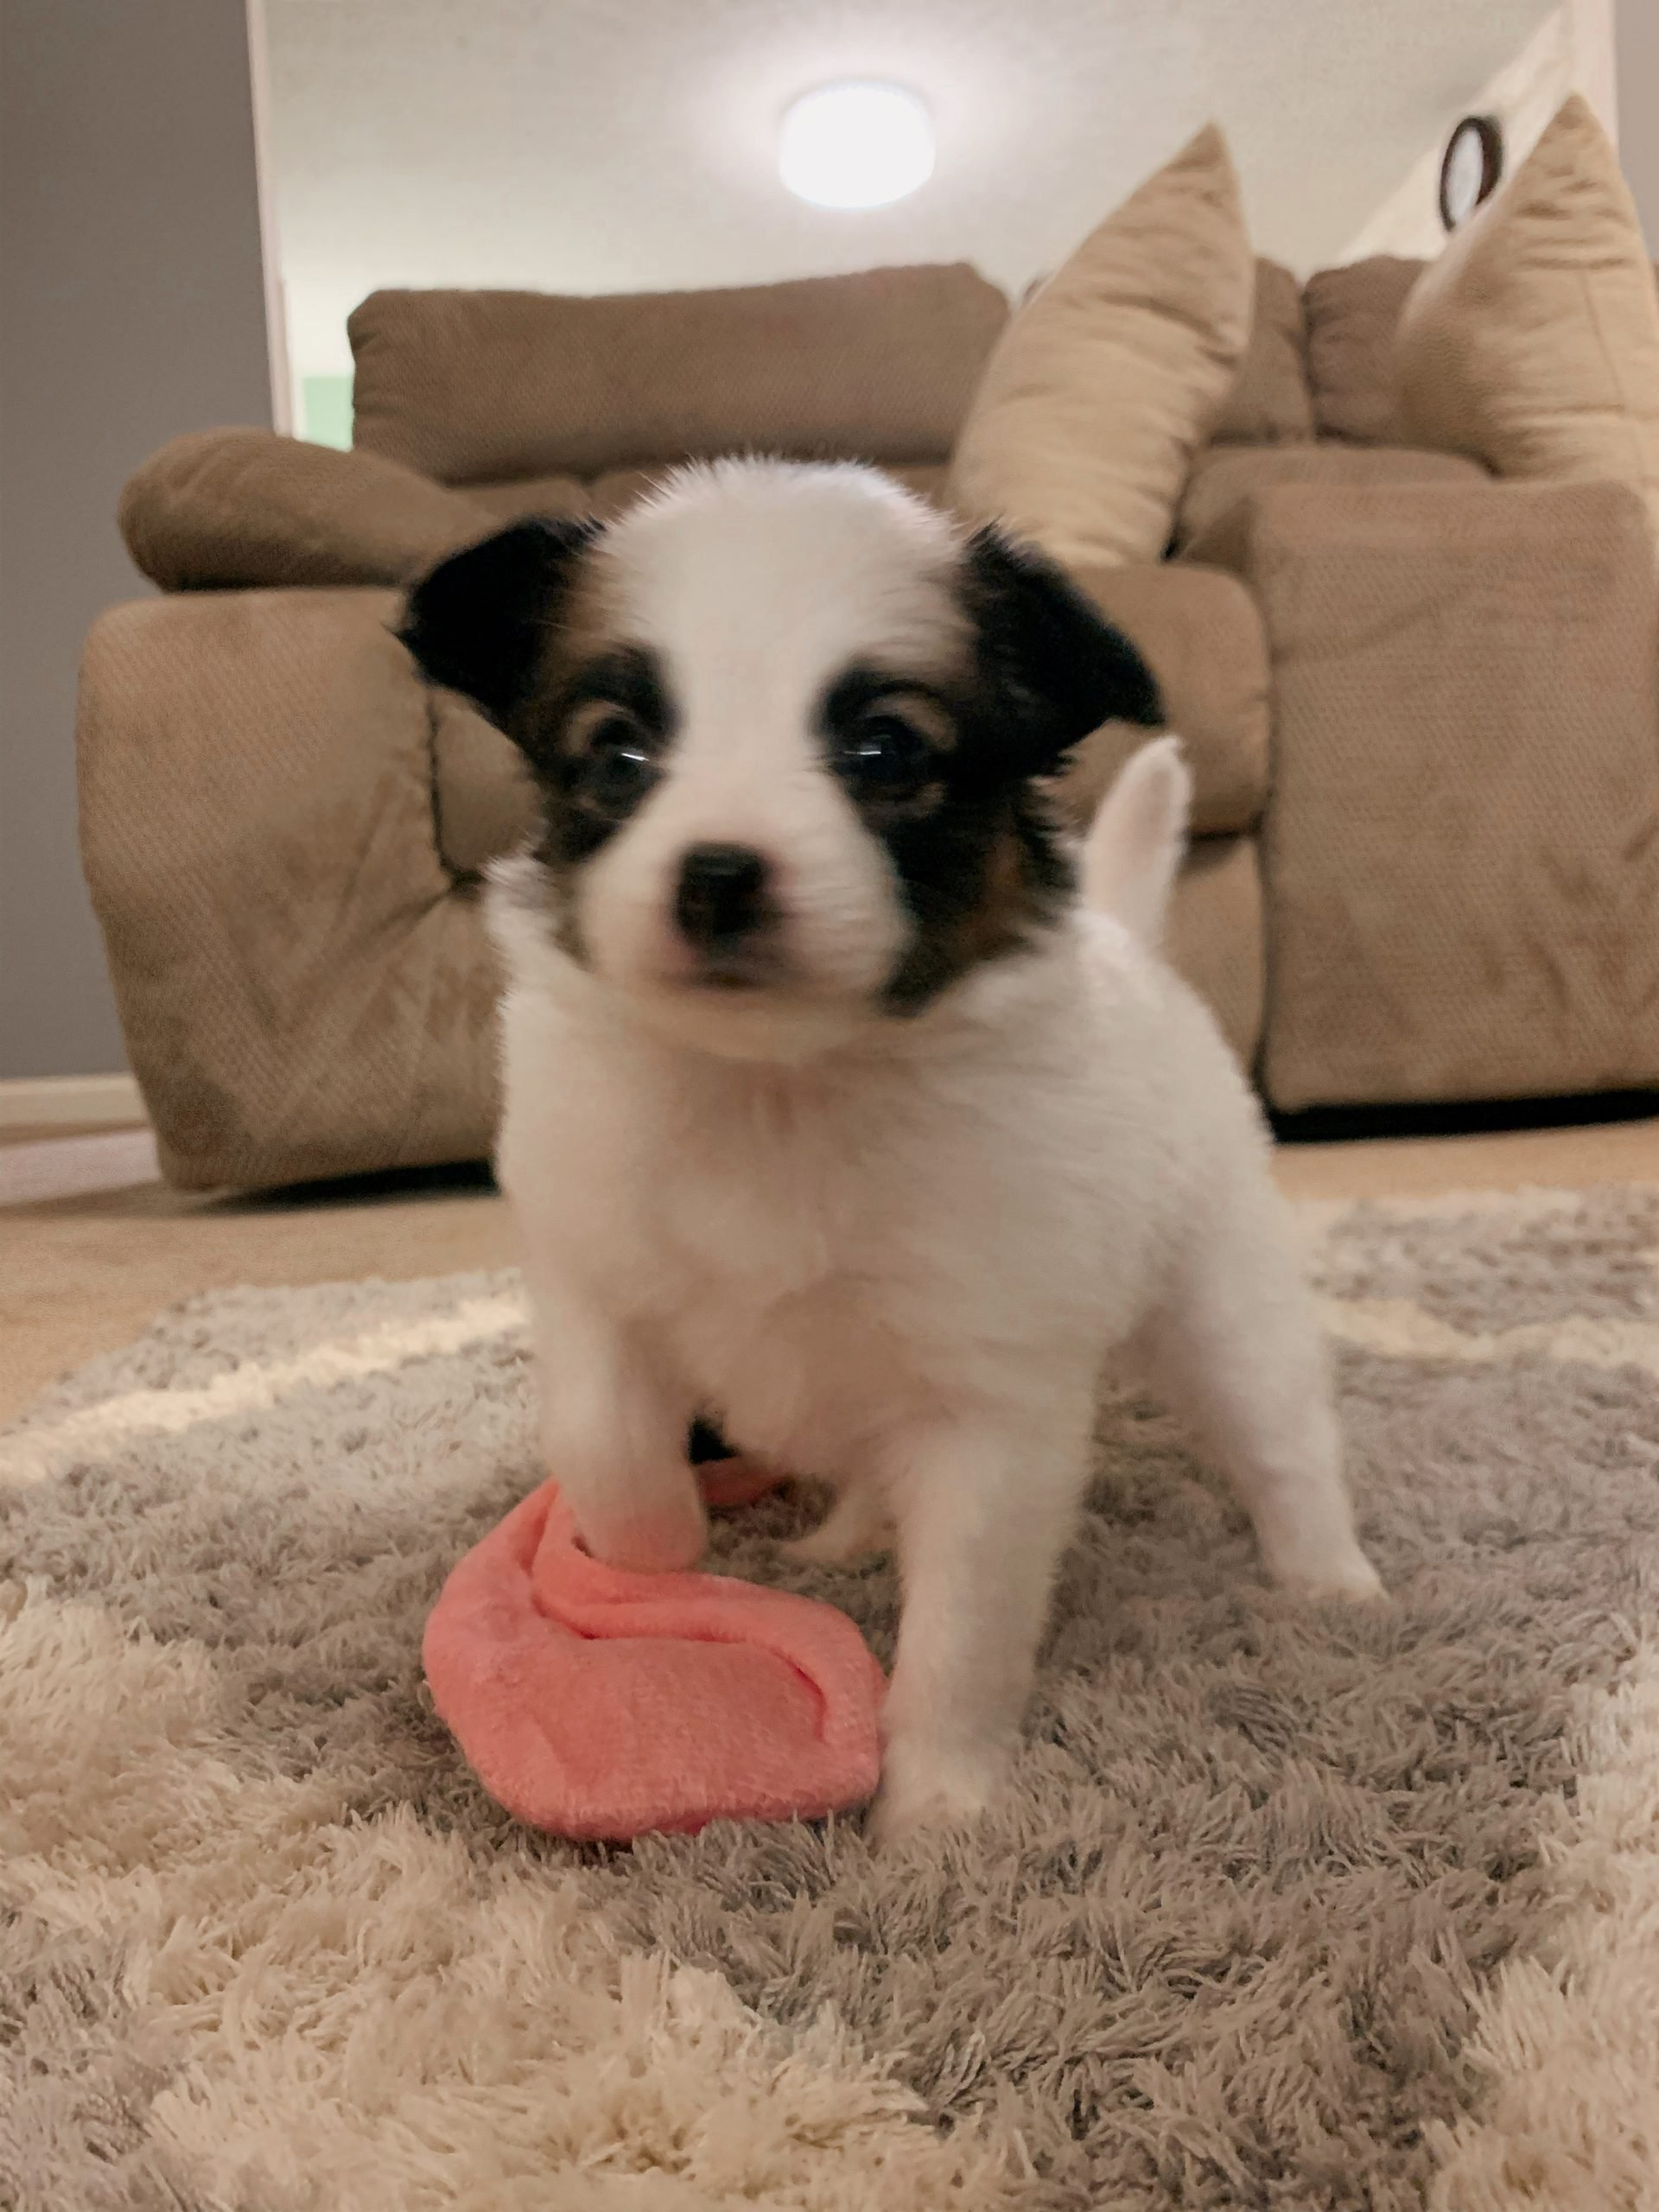 Phoebe - Female Papillon Puppy